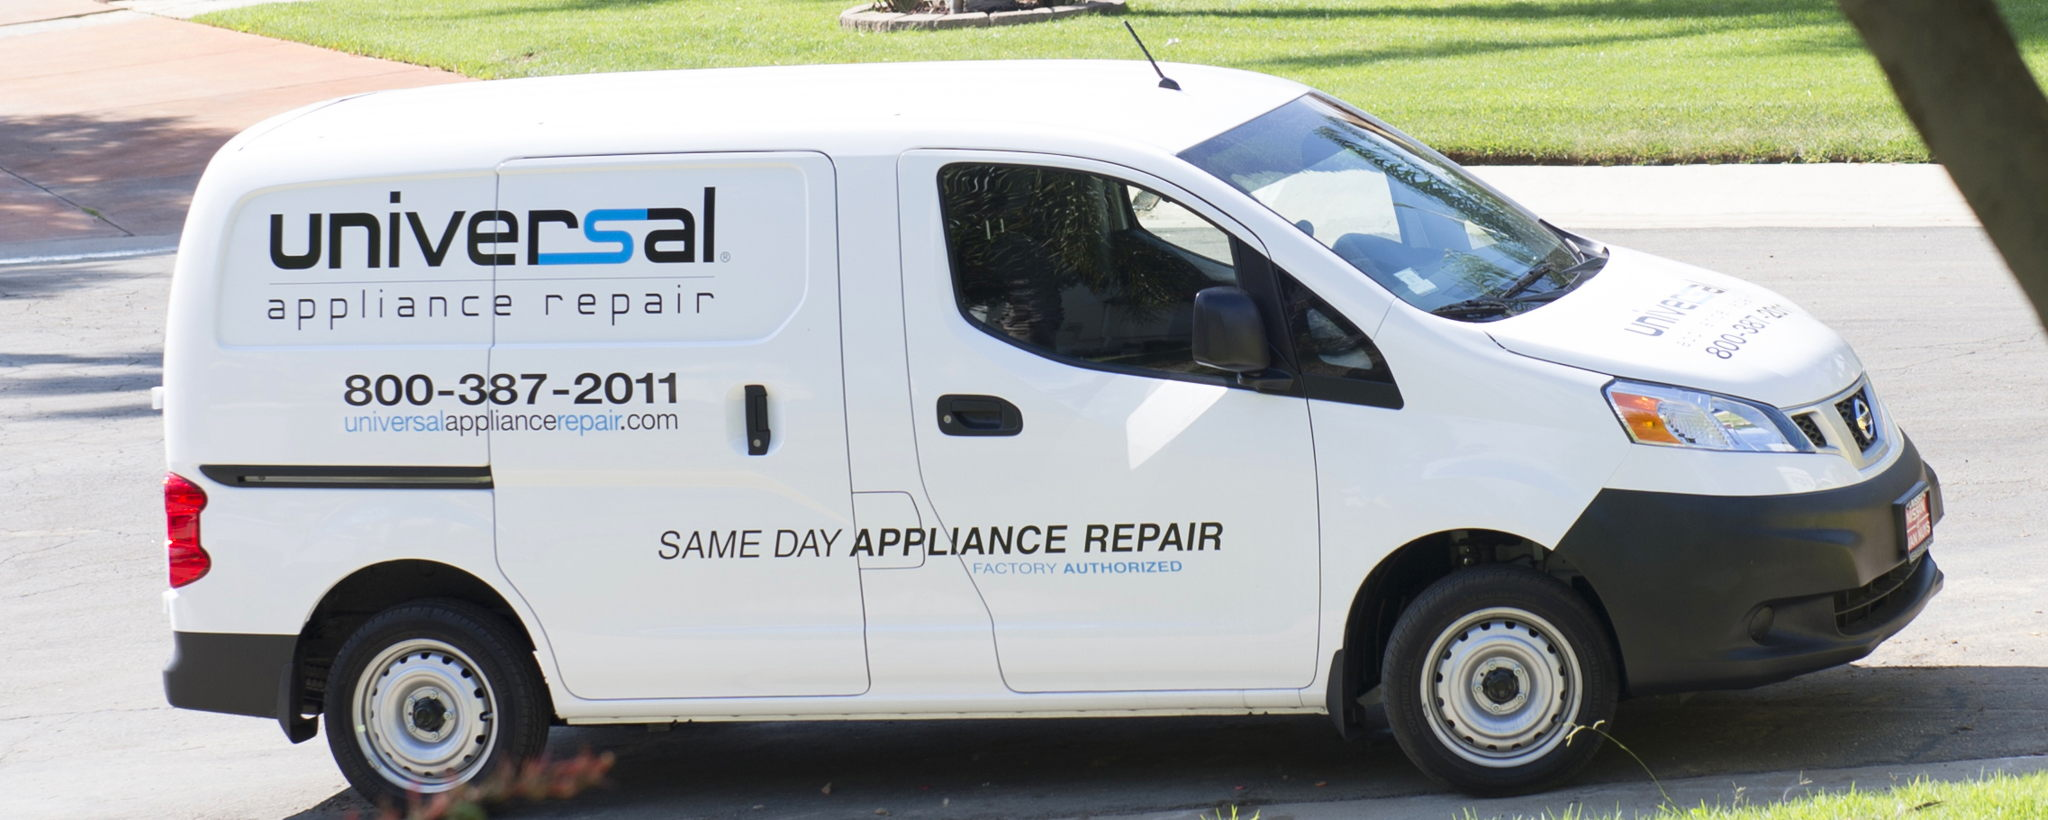 Universal Appliance Repair